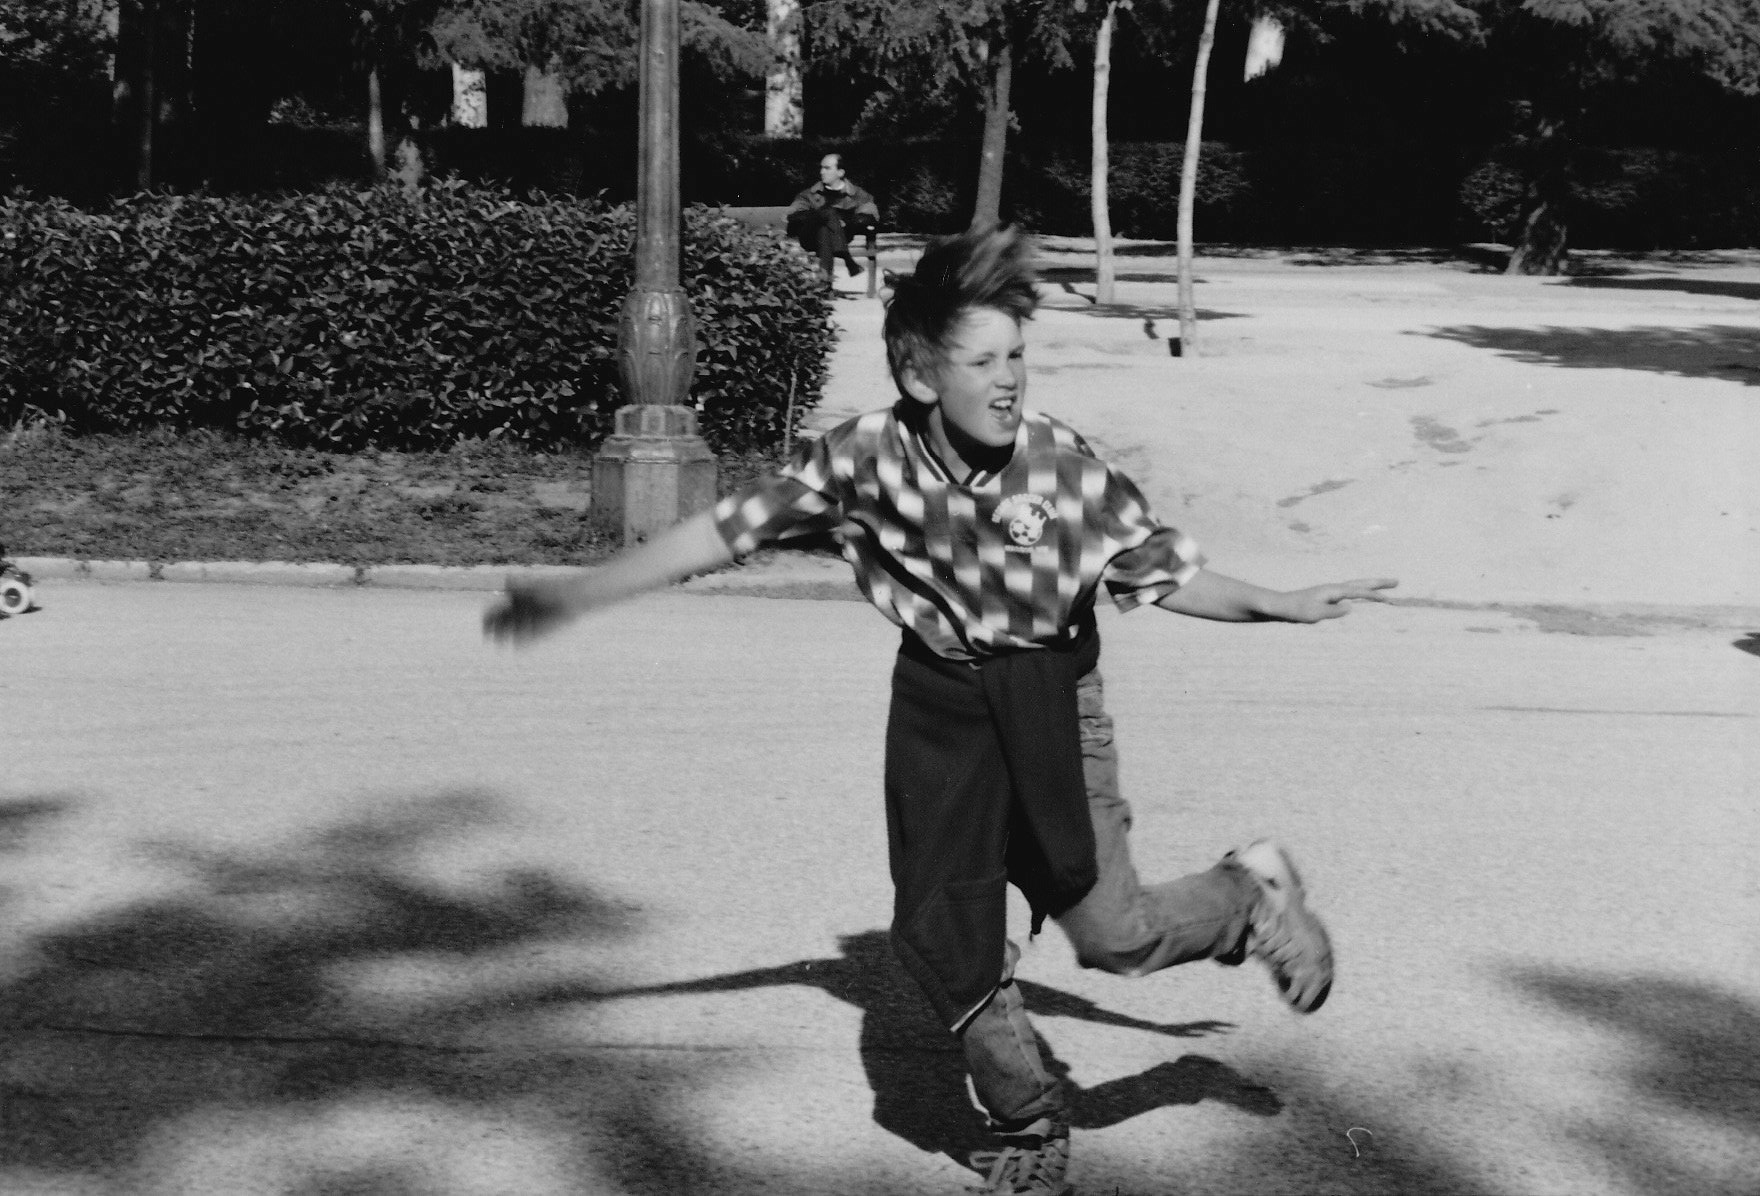 The author playing soccer in his home near the Retiro in Madrid, in his American youth jersey.